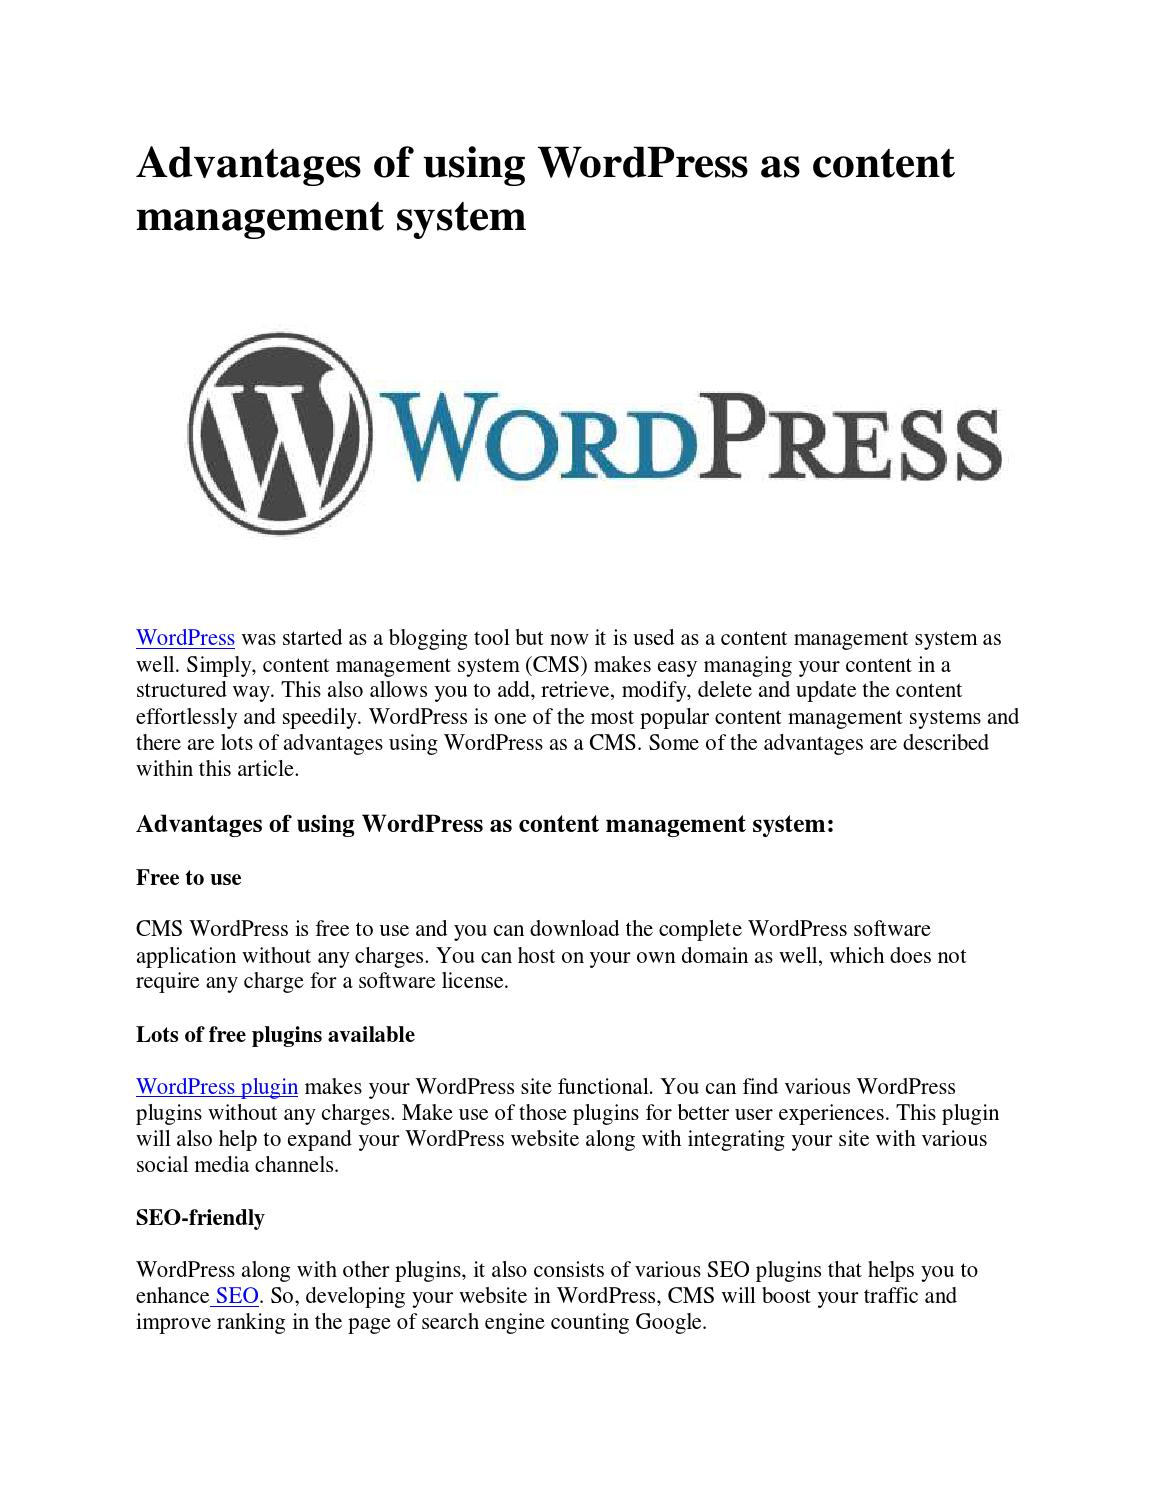 Advantages Of Using WordPress As Content Management System By Newswire Issuu